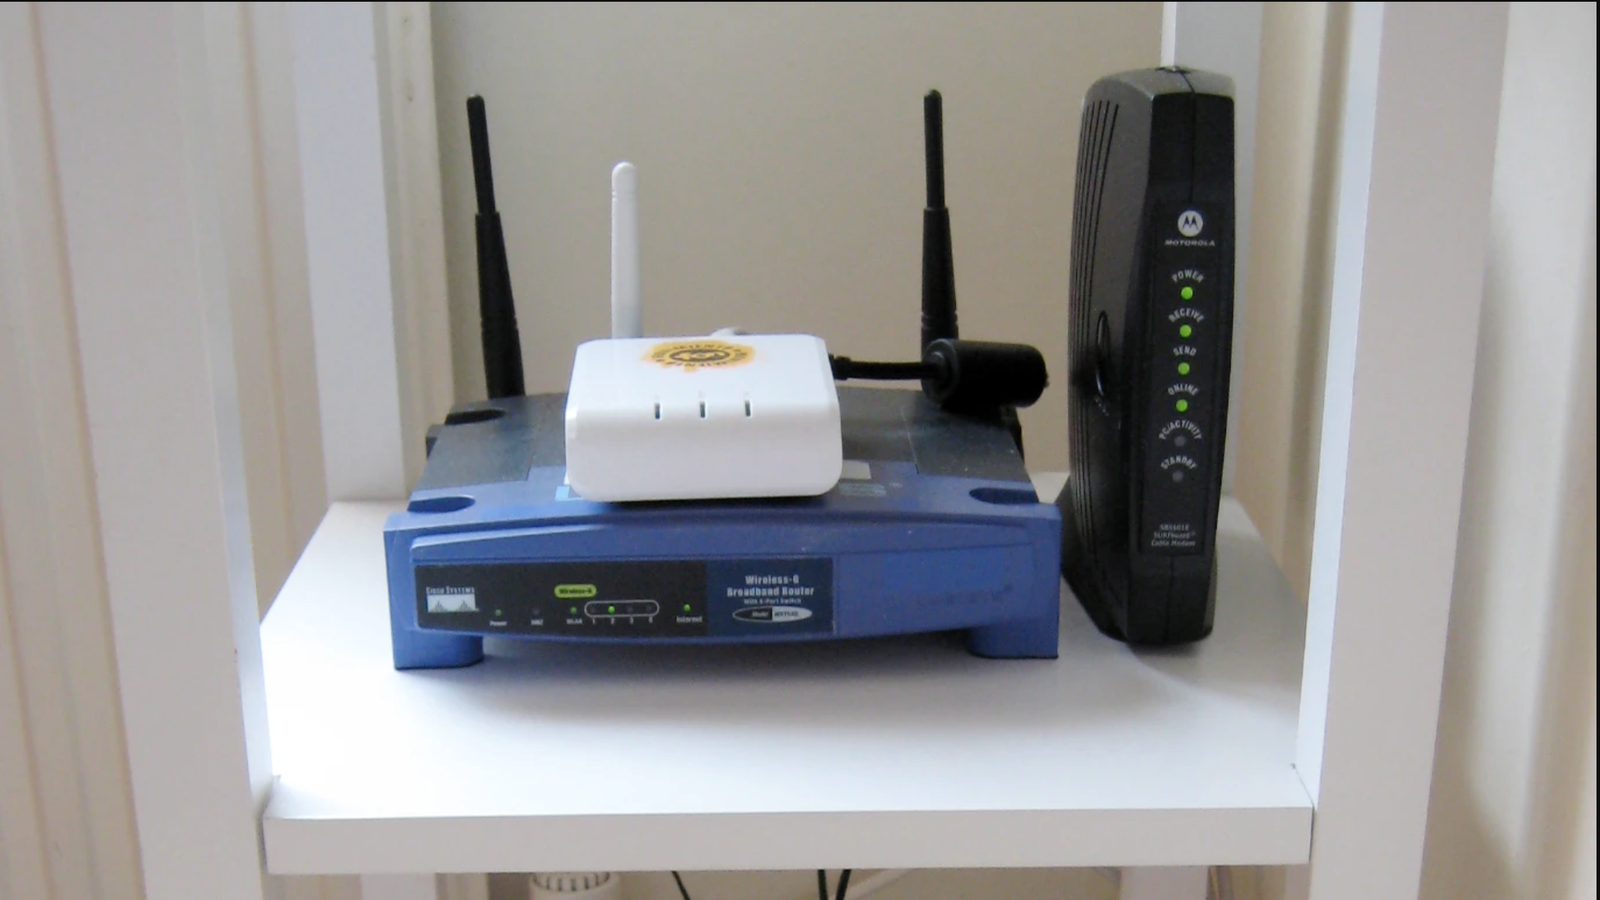 How To Extend Your Wifi Network With An Old Router